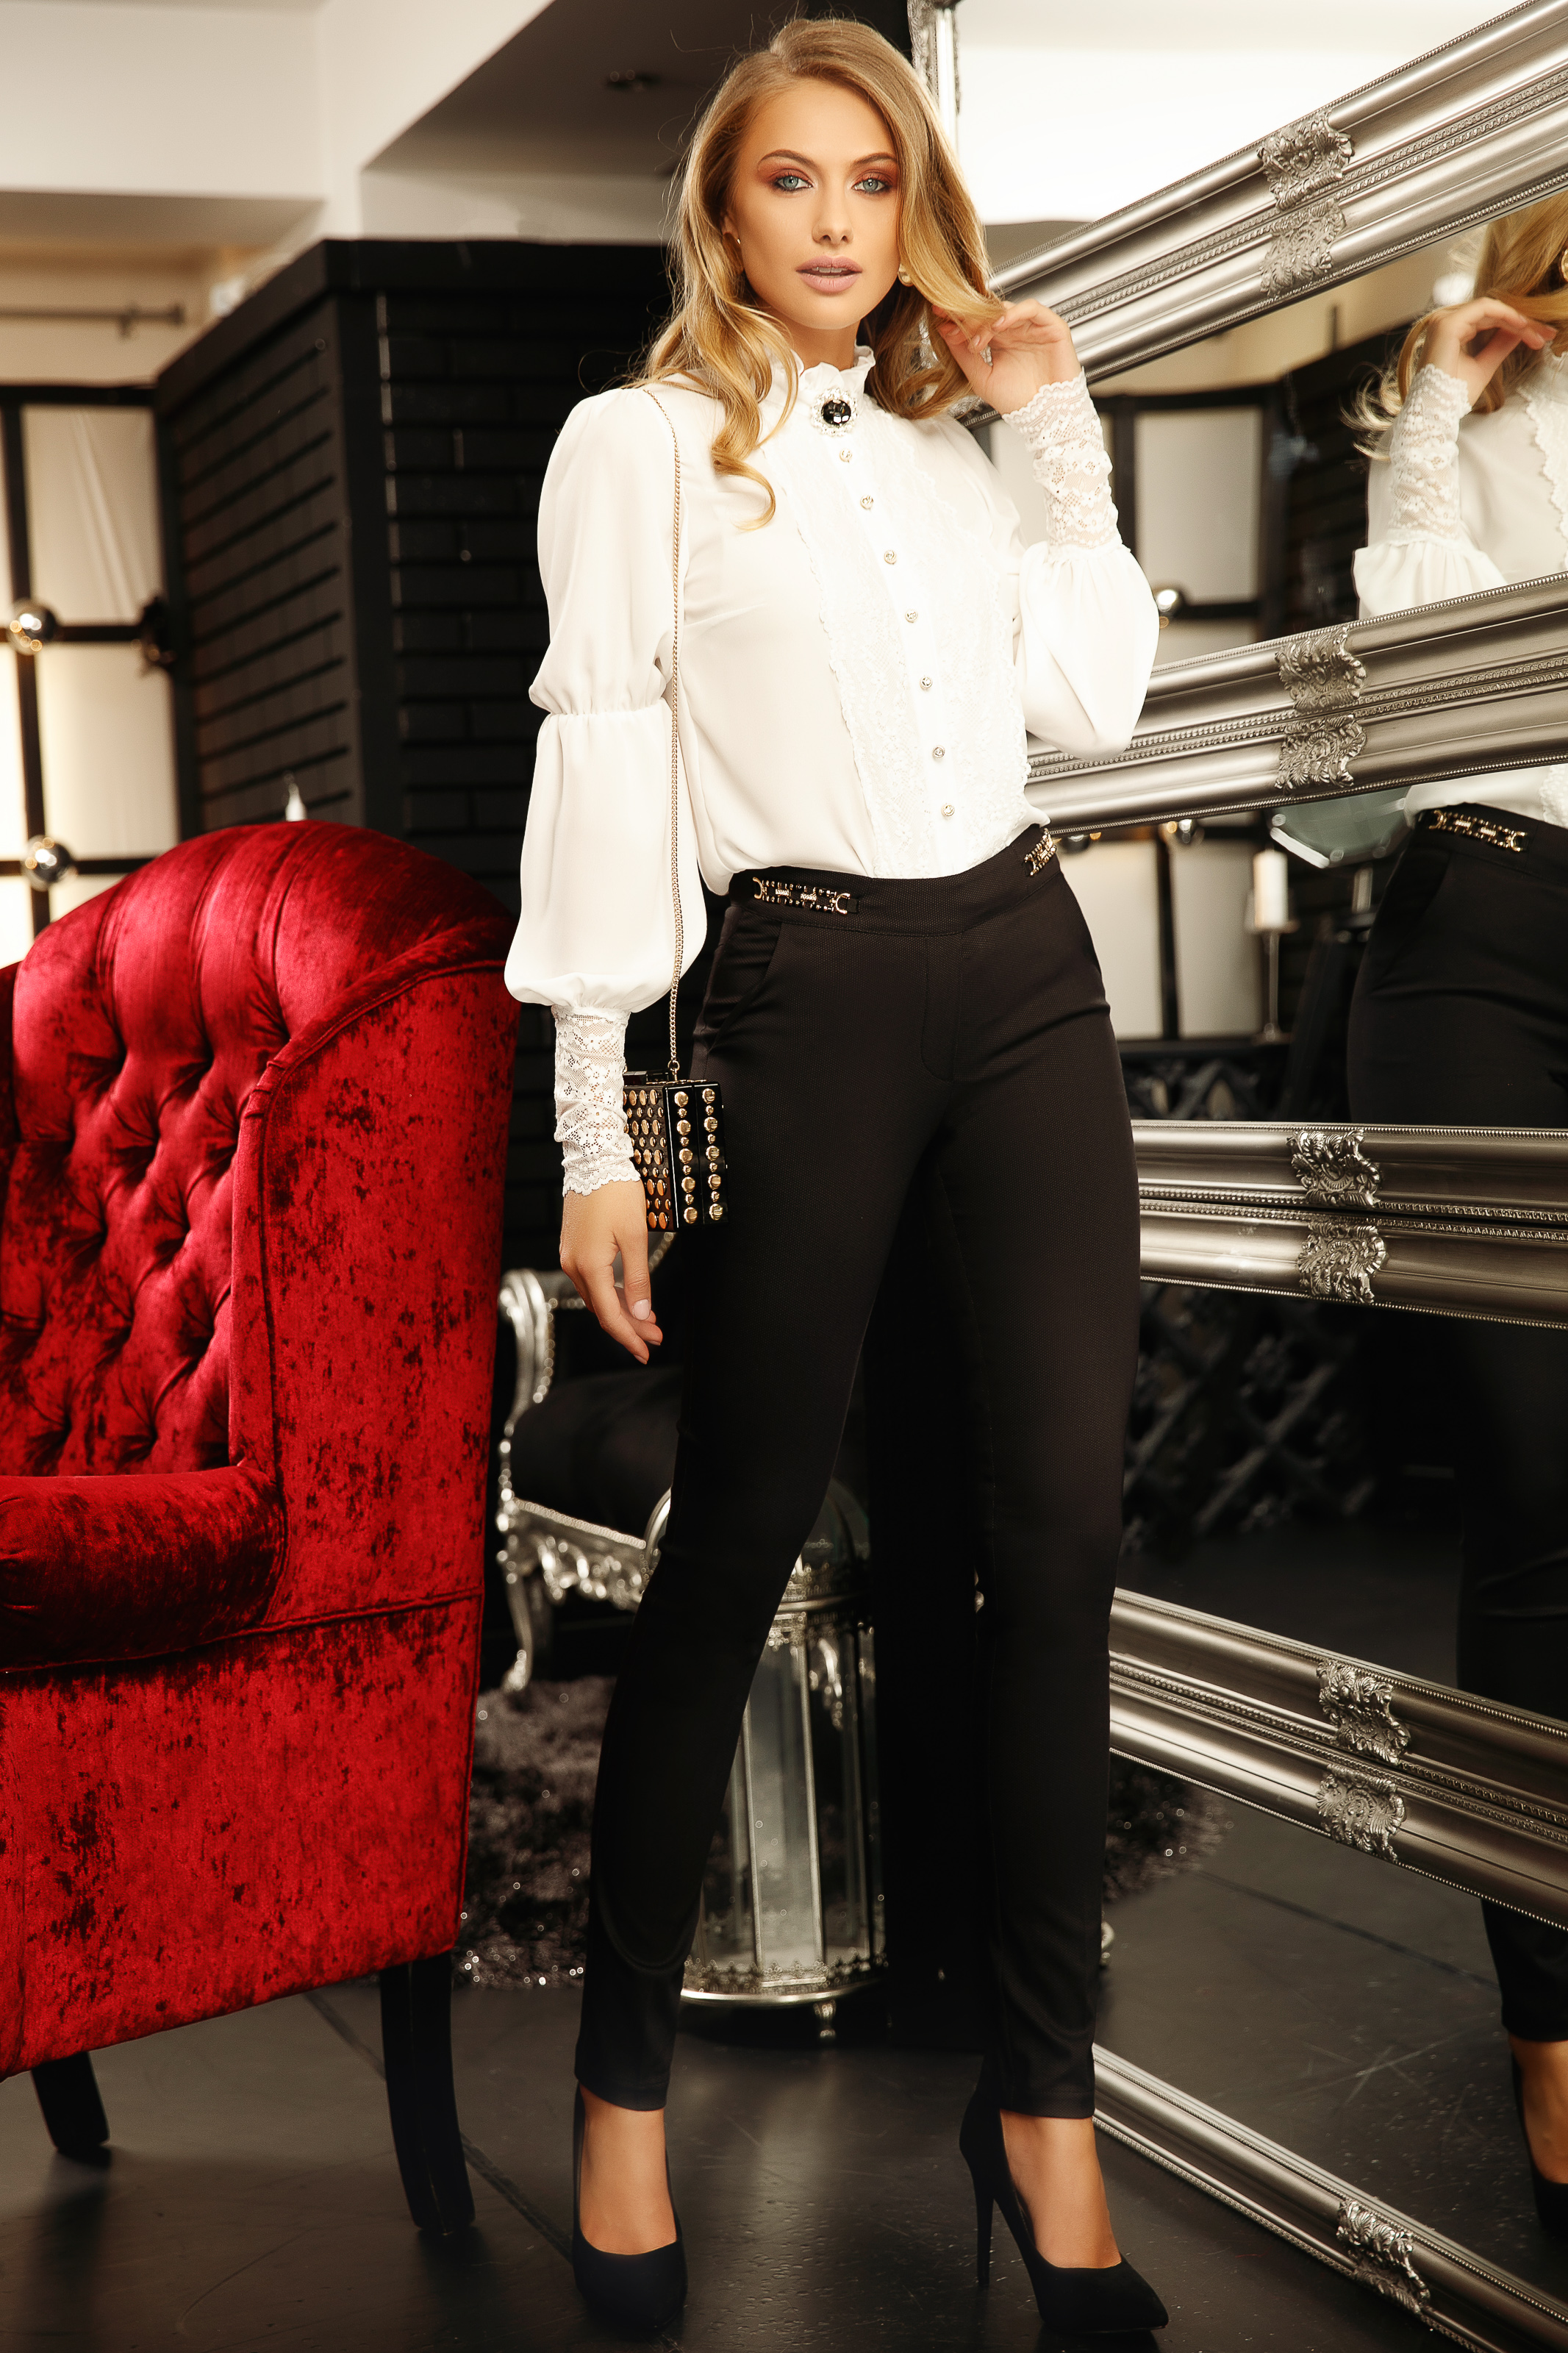 Elegant women`s shirt with easy cut from veil fabric with lace details accessorized with breastpin white